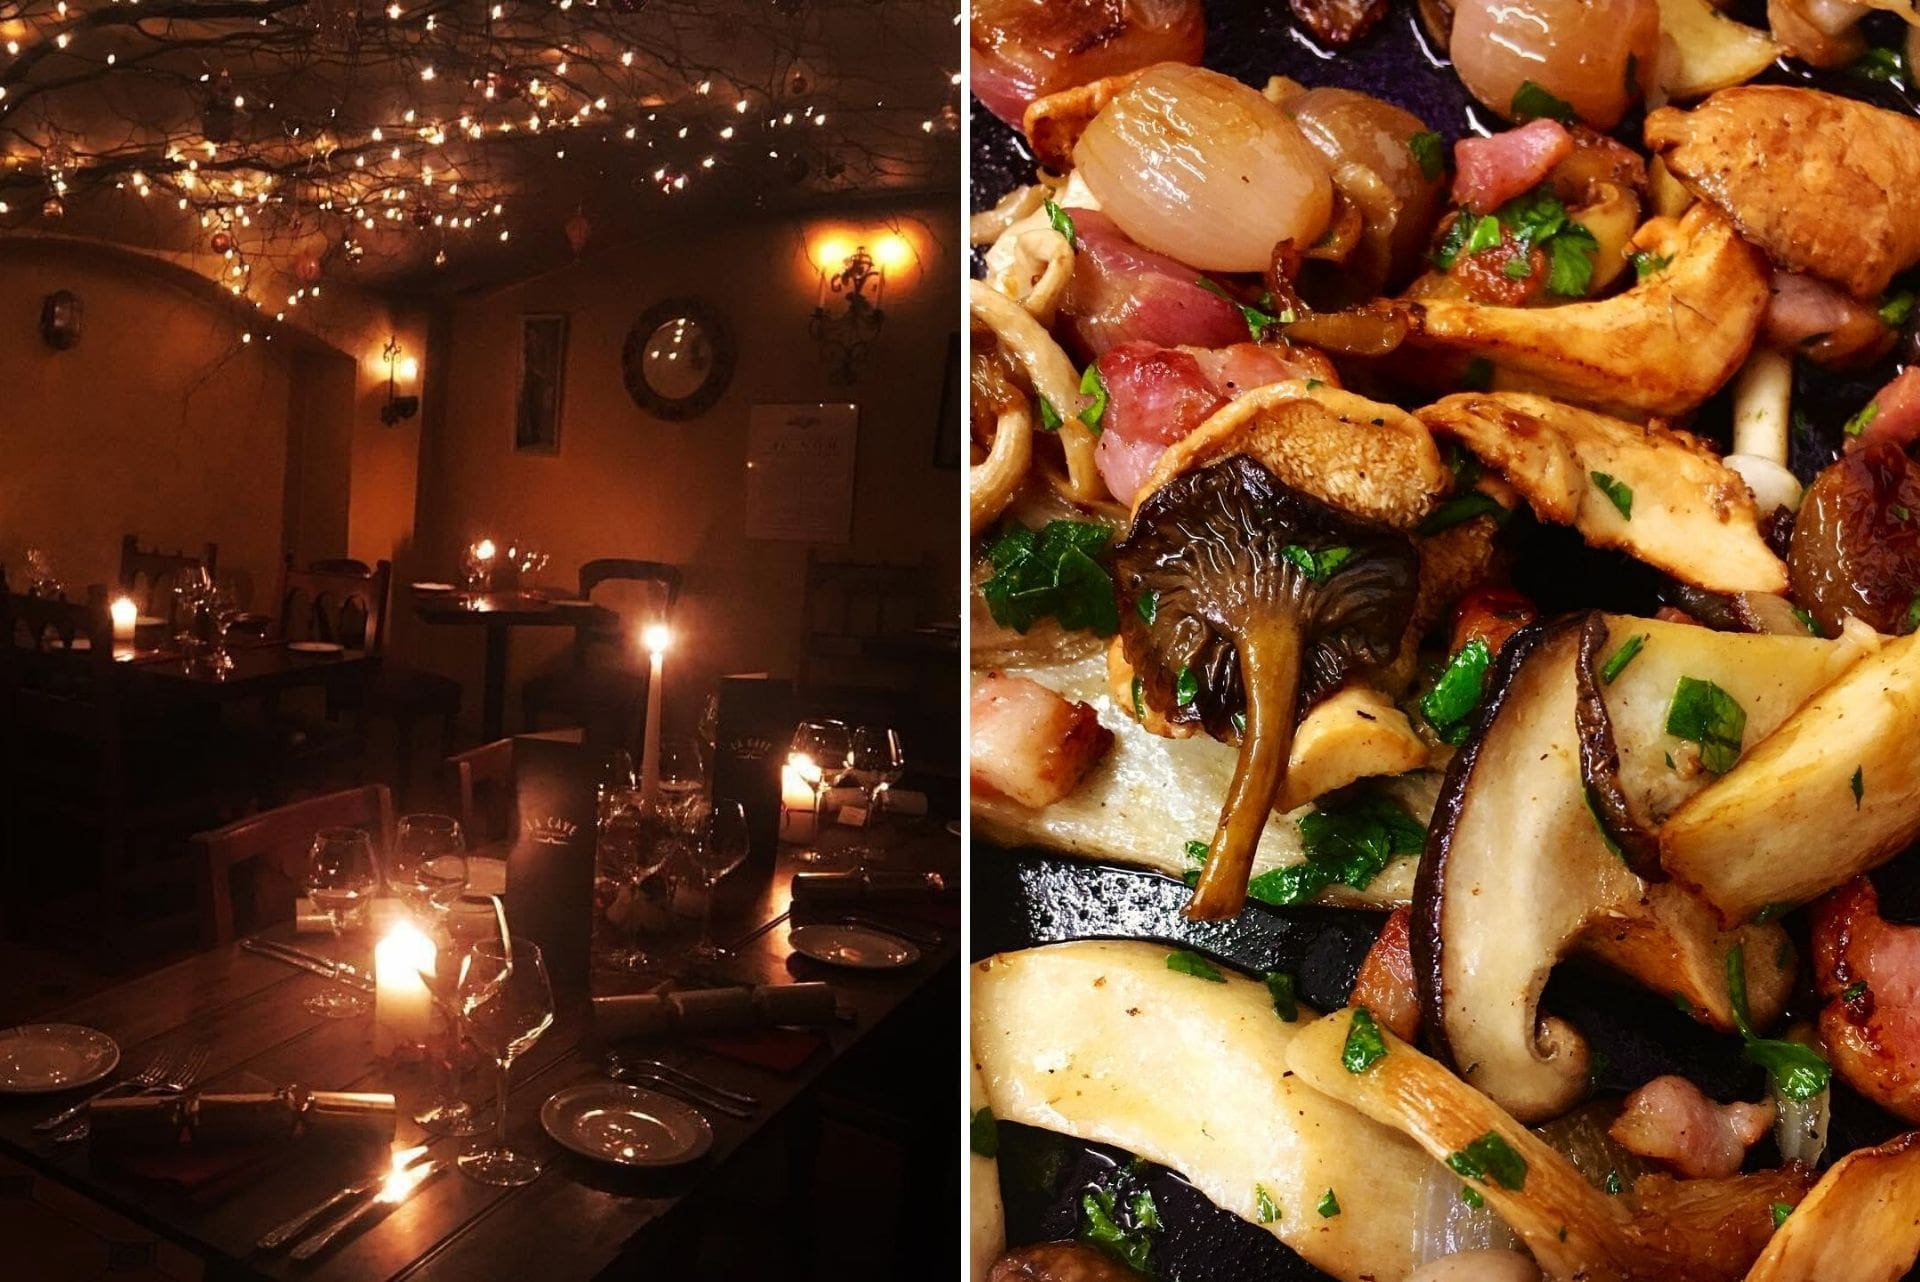 food-and-interior-of-la-cave-wine-bar-and-brassiere-light-up-at-night-by-fairy-lights-falmouth